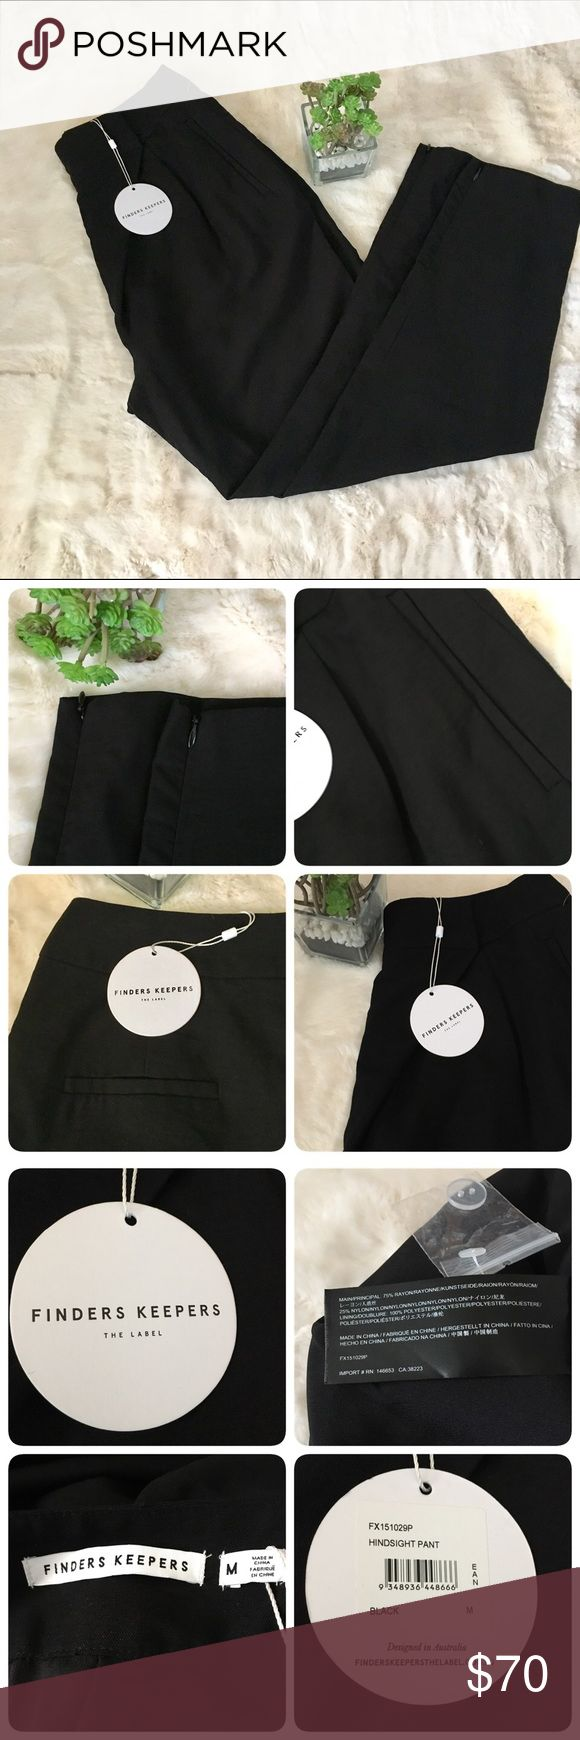 Finders Keepers The Label Hindsight Pants Finders keepers new with tags hindsight black pants. Beautiful urban-chic drop crotch style with a front wrap.Size M, front slit pockets, back welt pockets, tapered legs with  invisible ankle zippers. Finders Keepers Pants Ankle & Cropped